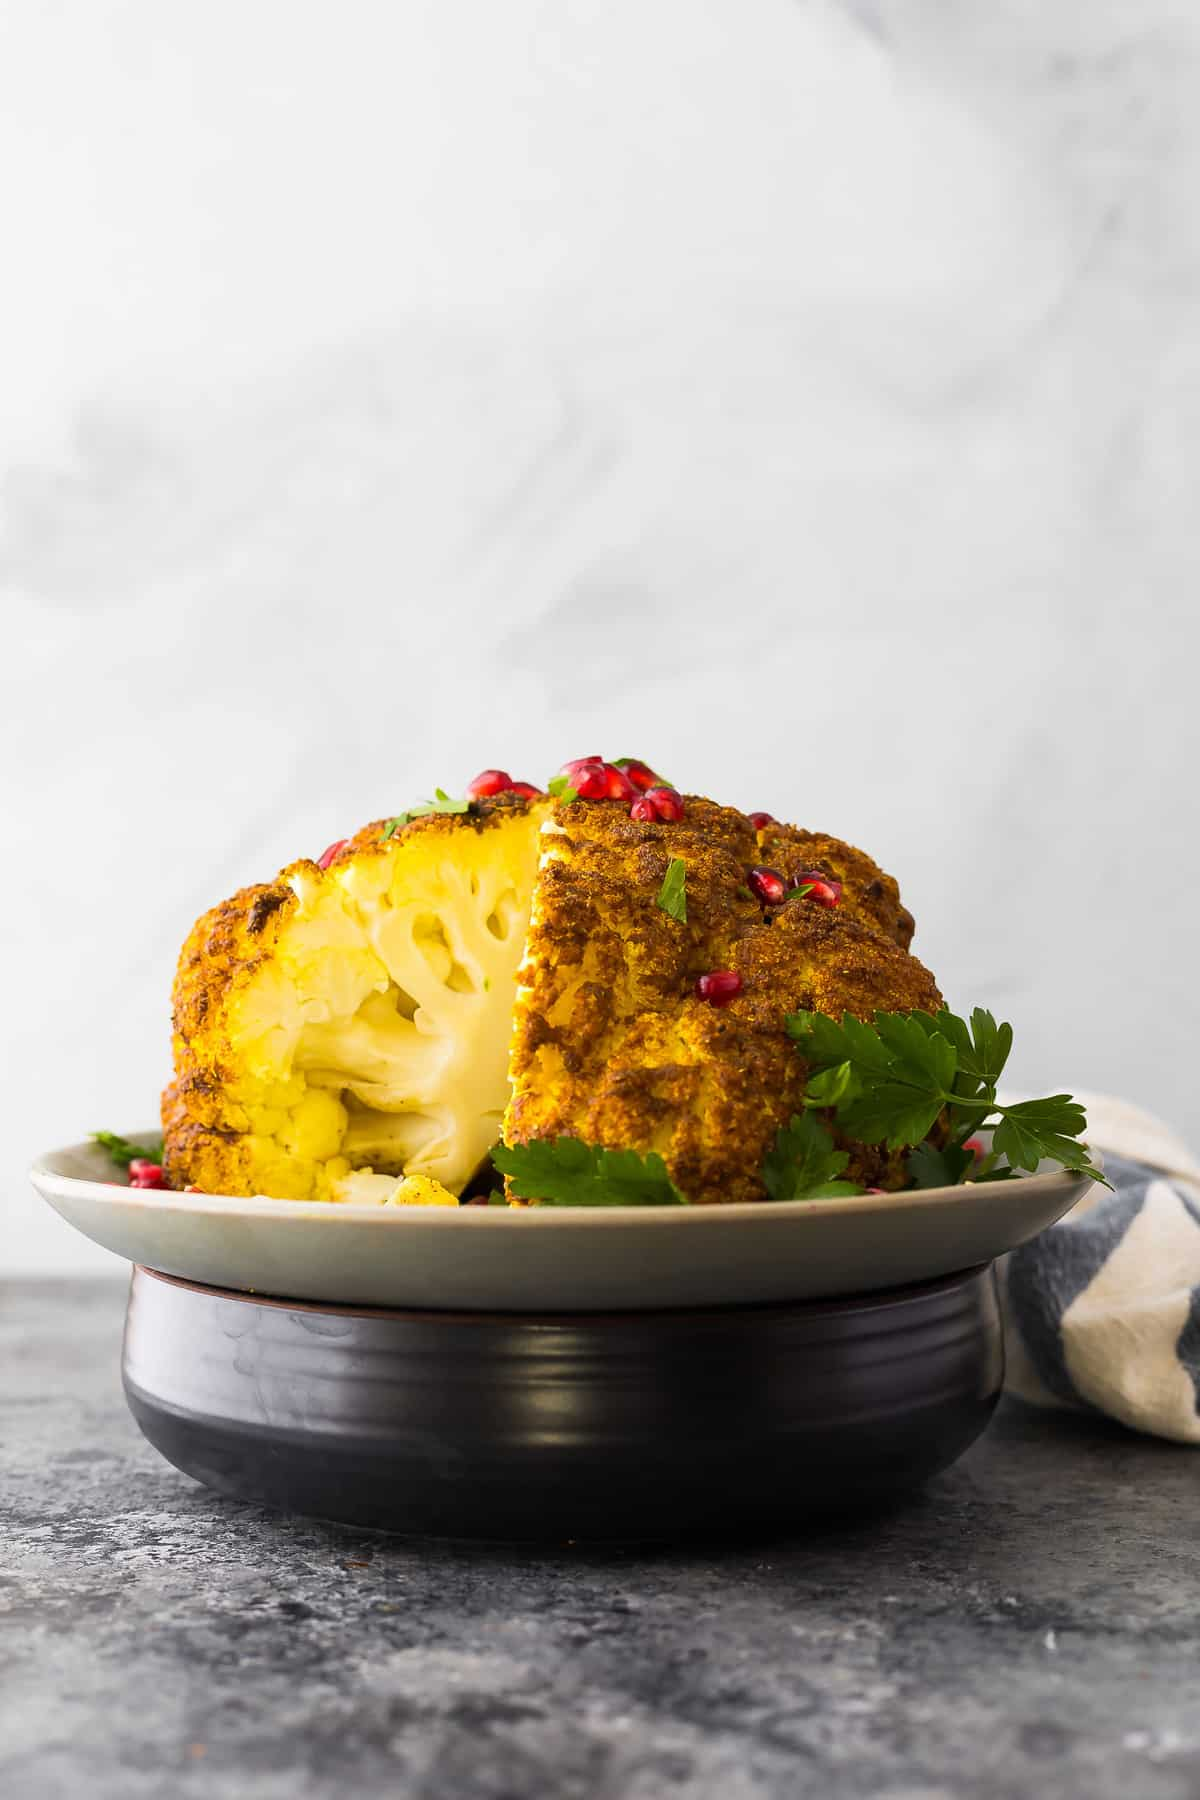 whole roasted cauliflower with a slice taken out